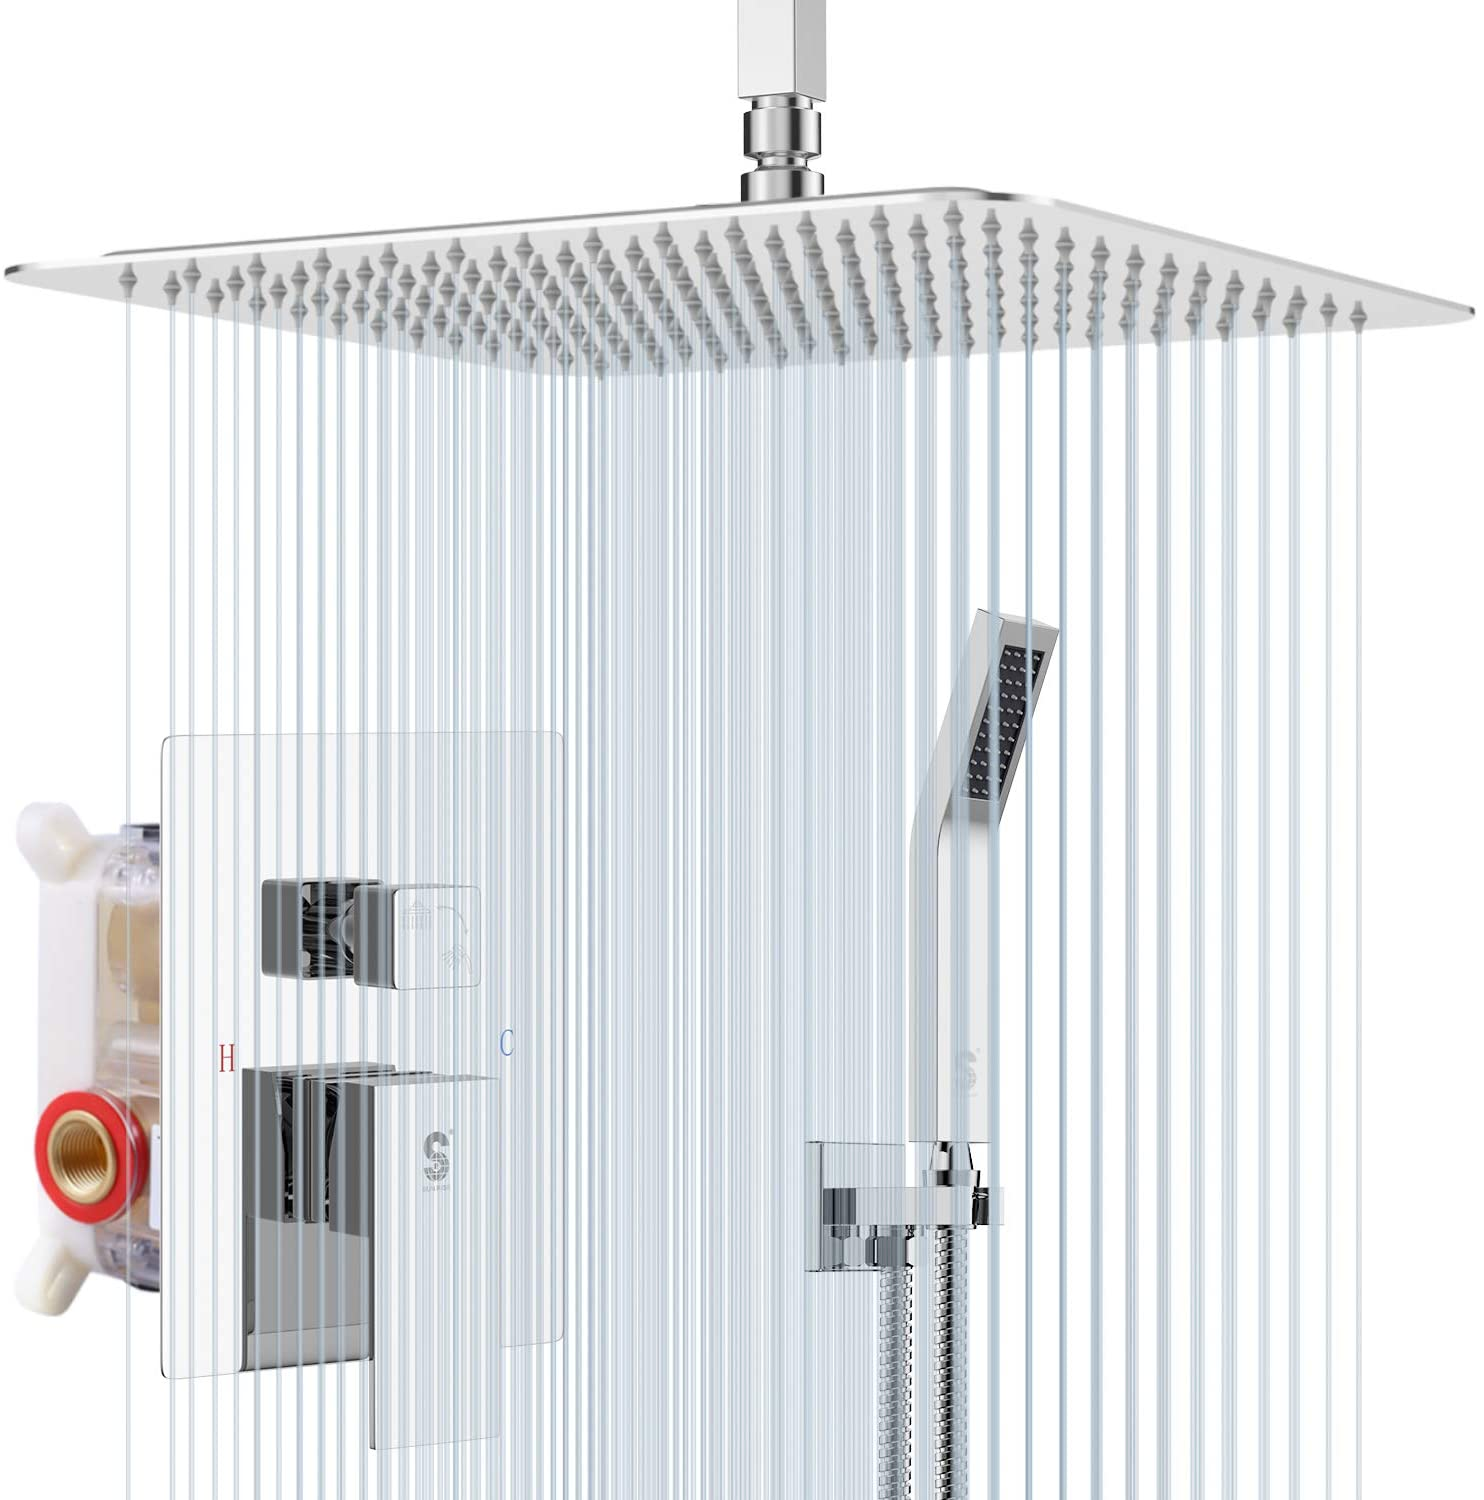 SR SUN RISE 12 Inch Ceiling Mounted Shower System Rain Mixer Shower Combo Set Rainfall Shower Head System Polished Chrome Shower Faucet Rough-in Valve Body and Trim Included